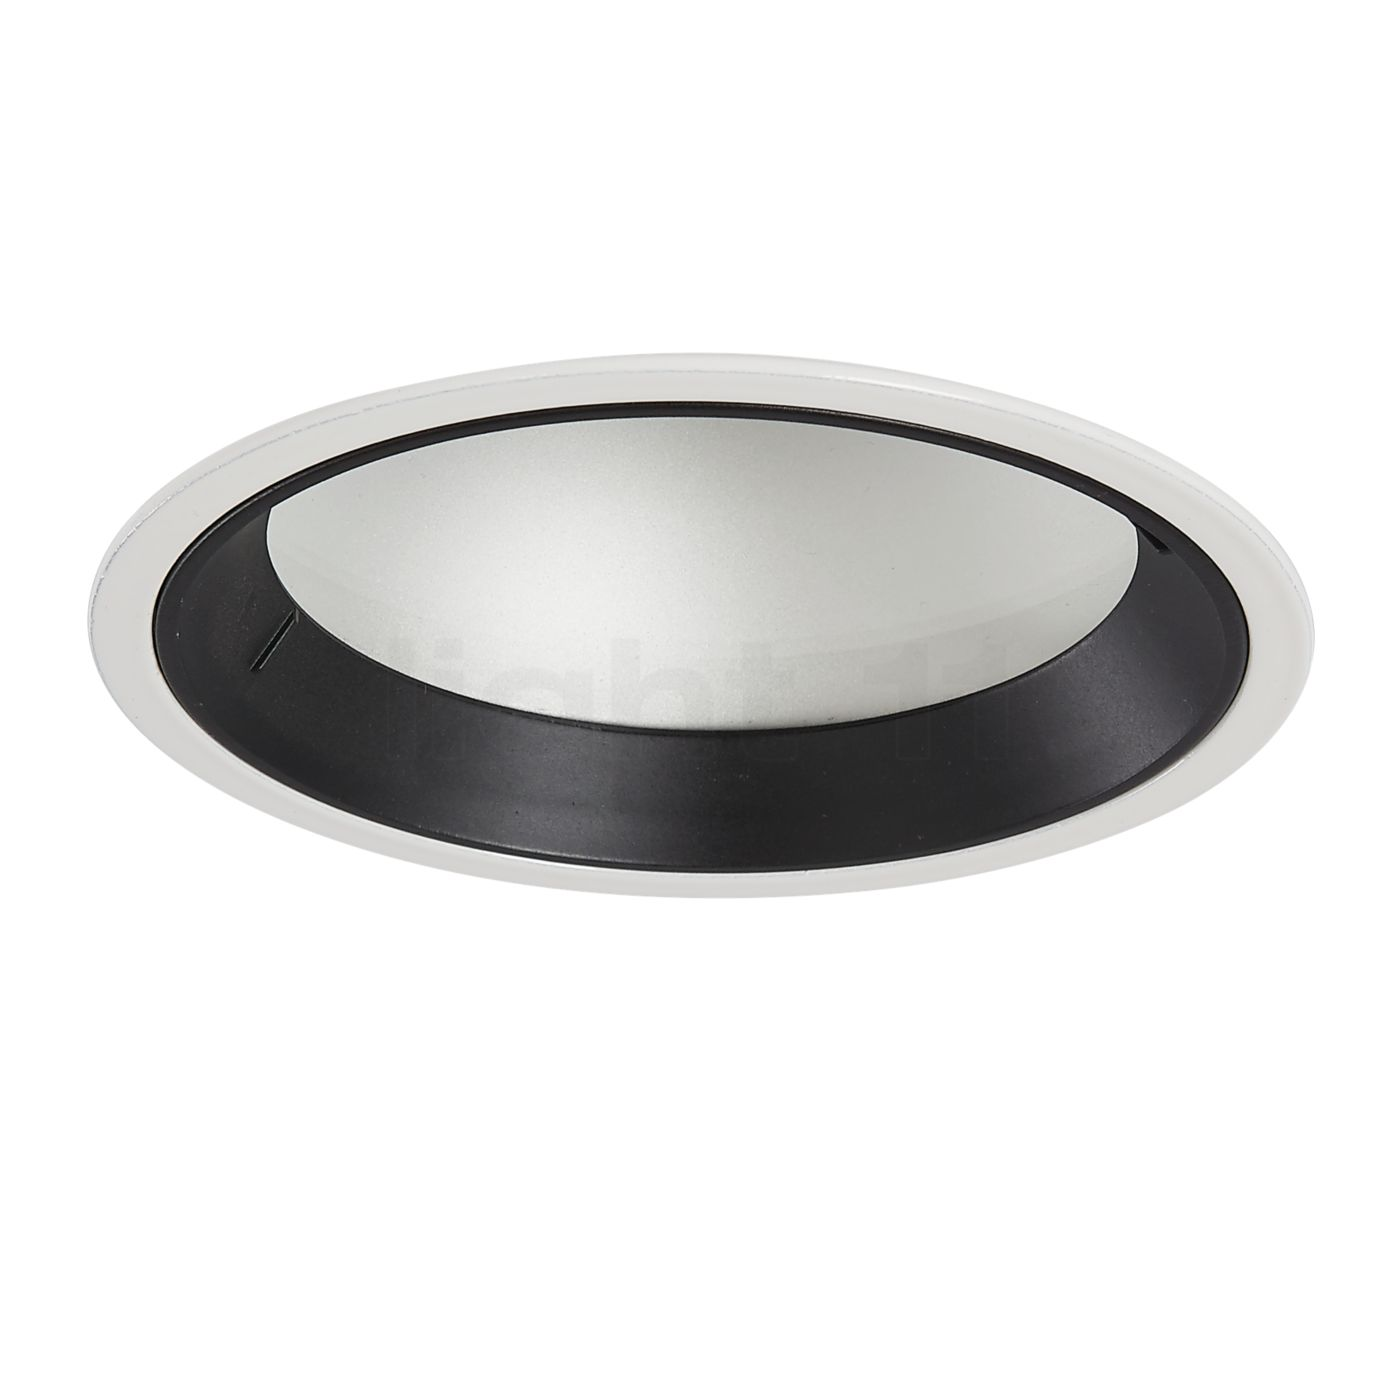 Flos wan downlight led recessed ceiling light picture lights aloadofball Images